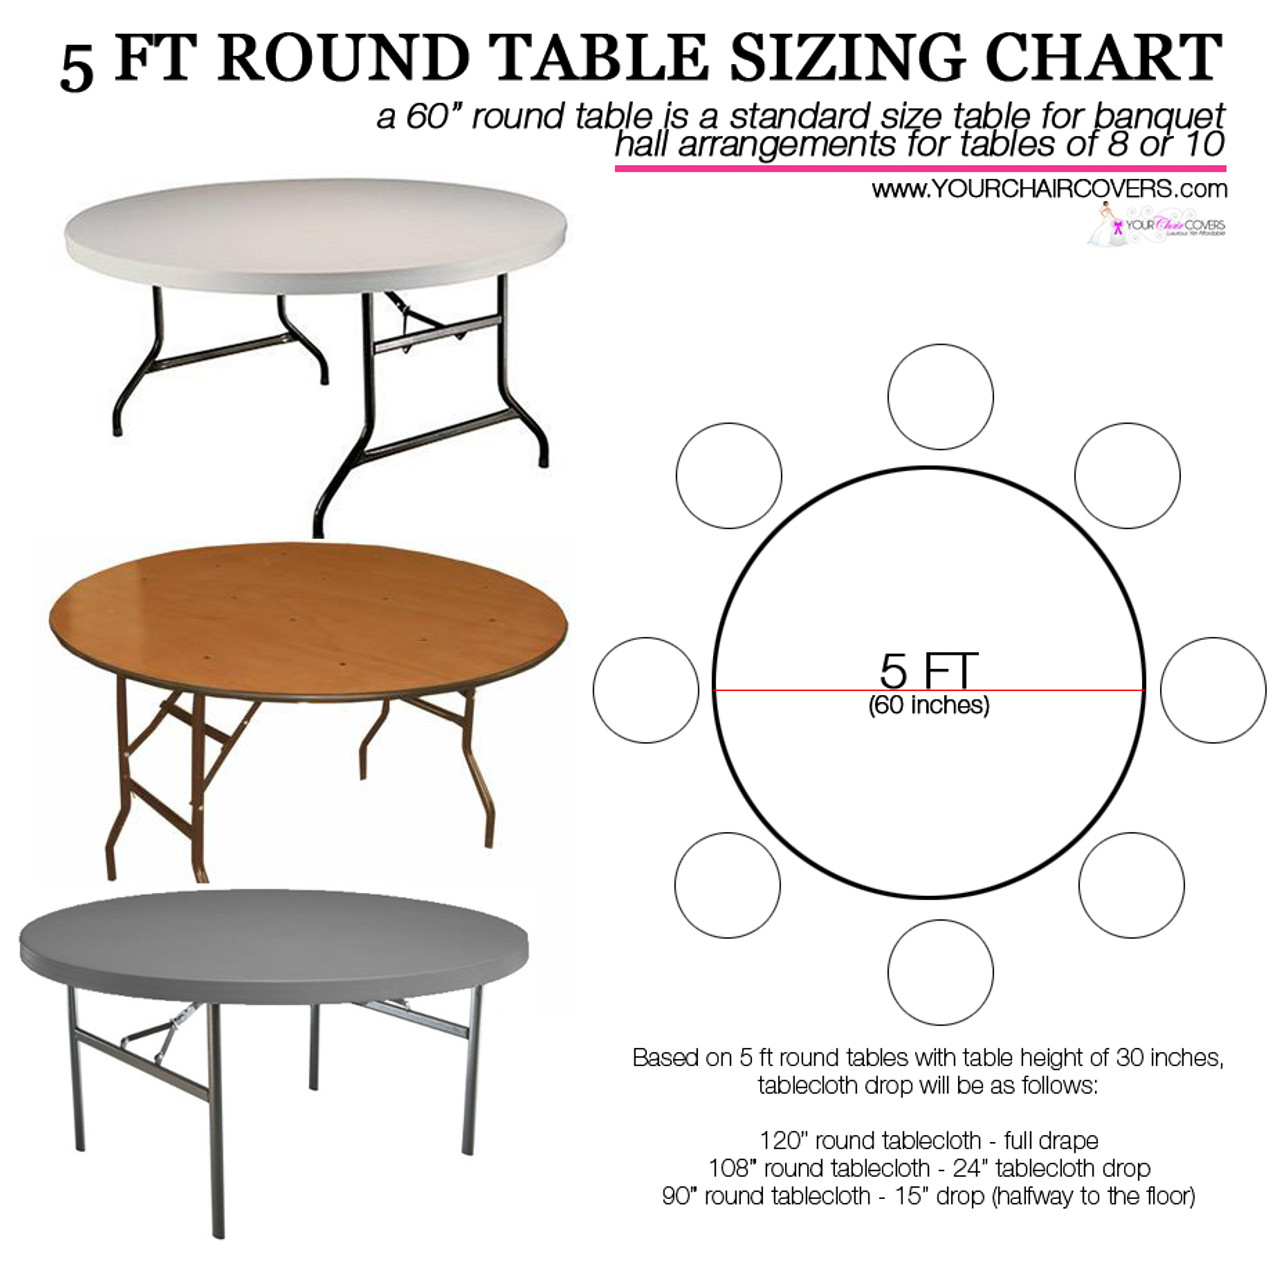 Merveilleux 120 Inch Round Polyester Tablecloths Black · How To Buy Tablecloths For 5  Ft Round Tables? Use This Tablecloth Sizing Guide,